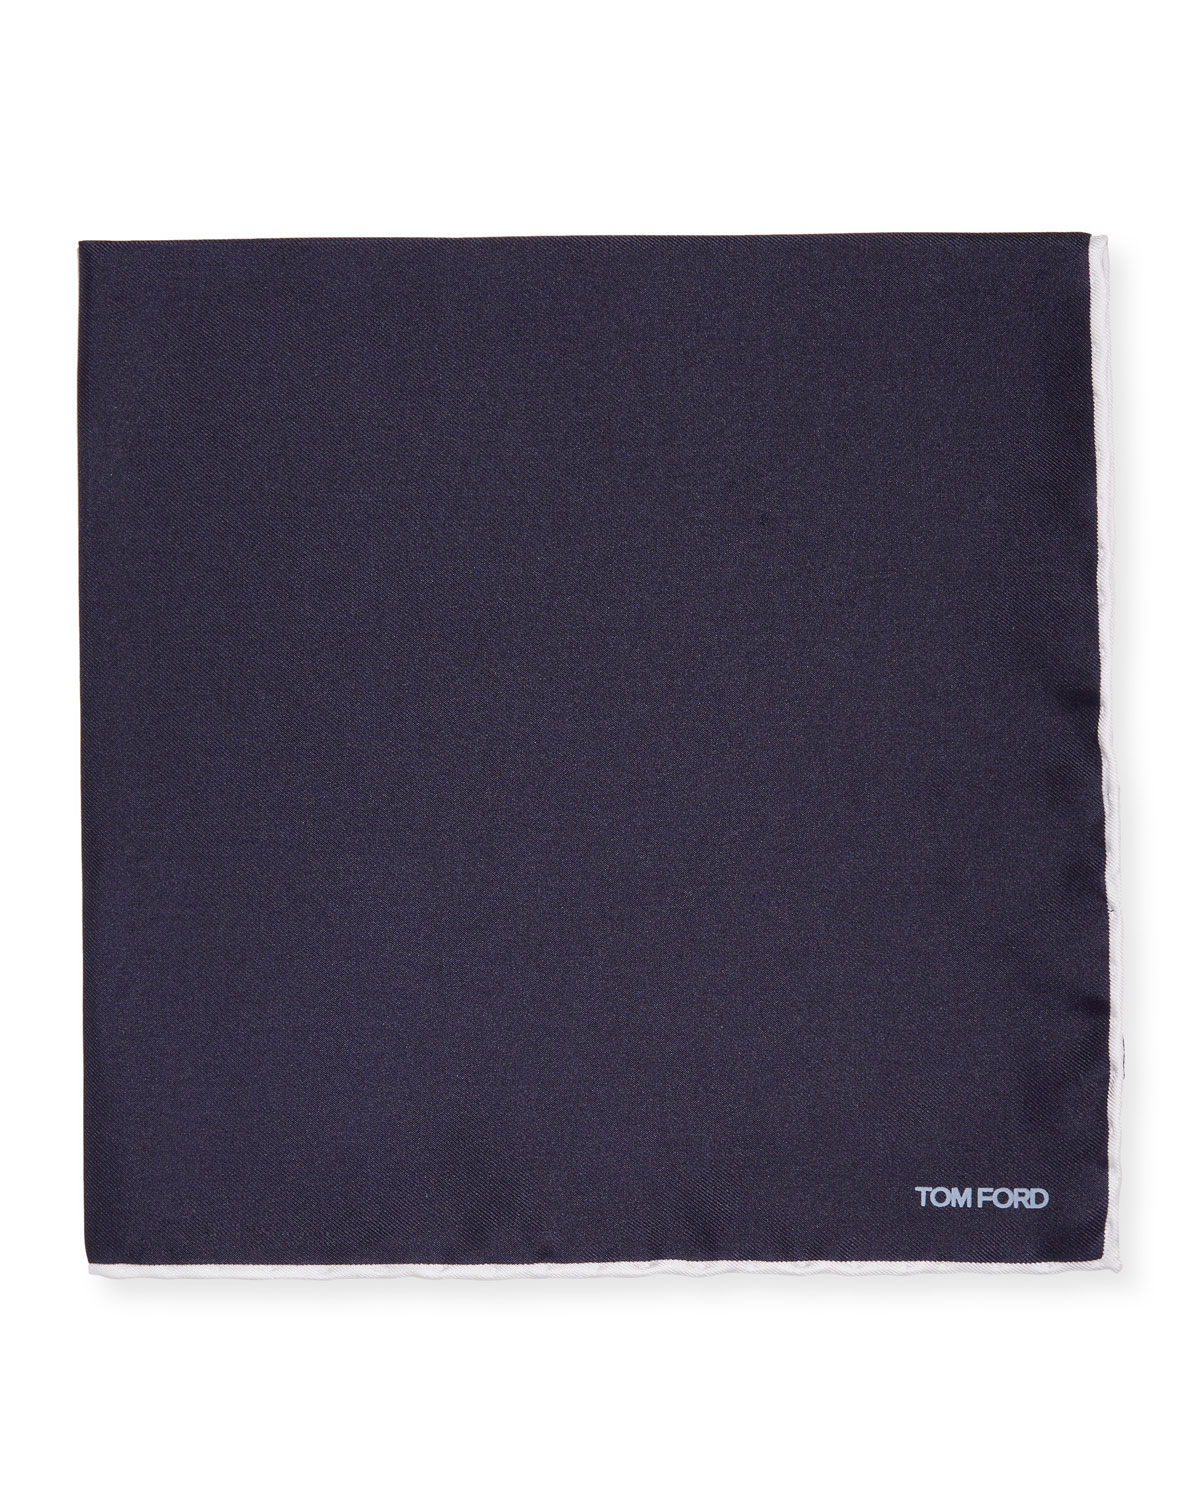 TOM FORD Men's Solid Silk Pocket Square